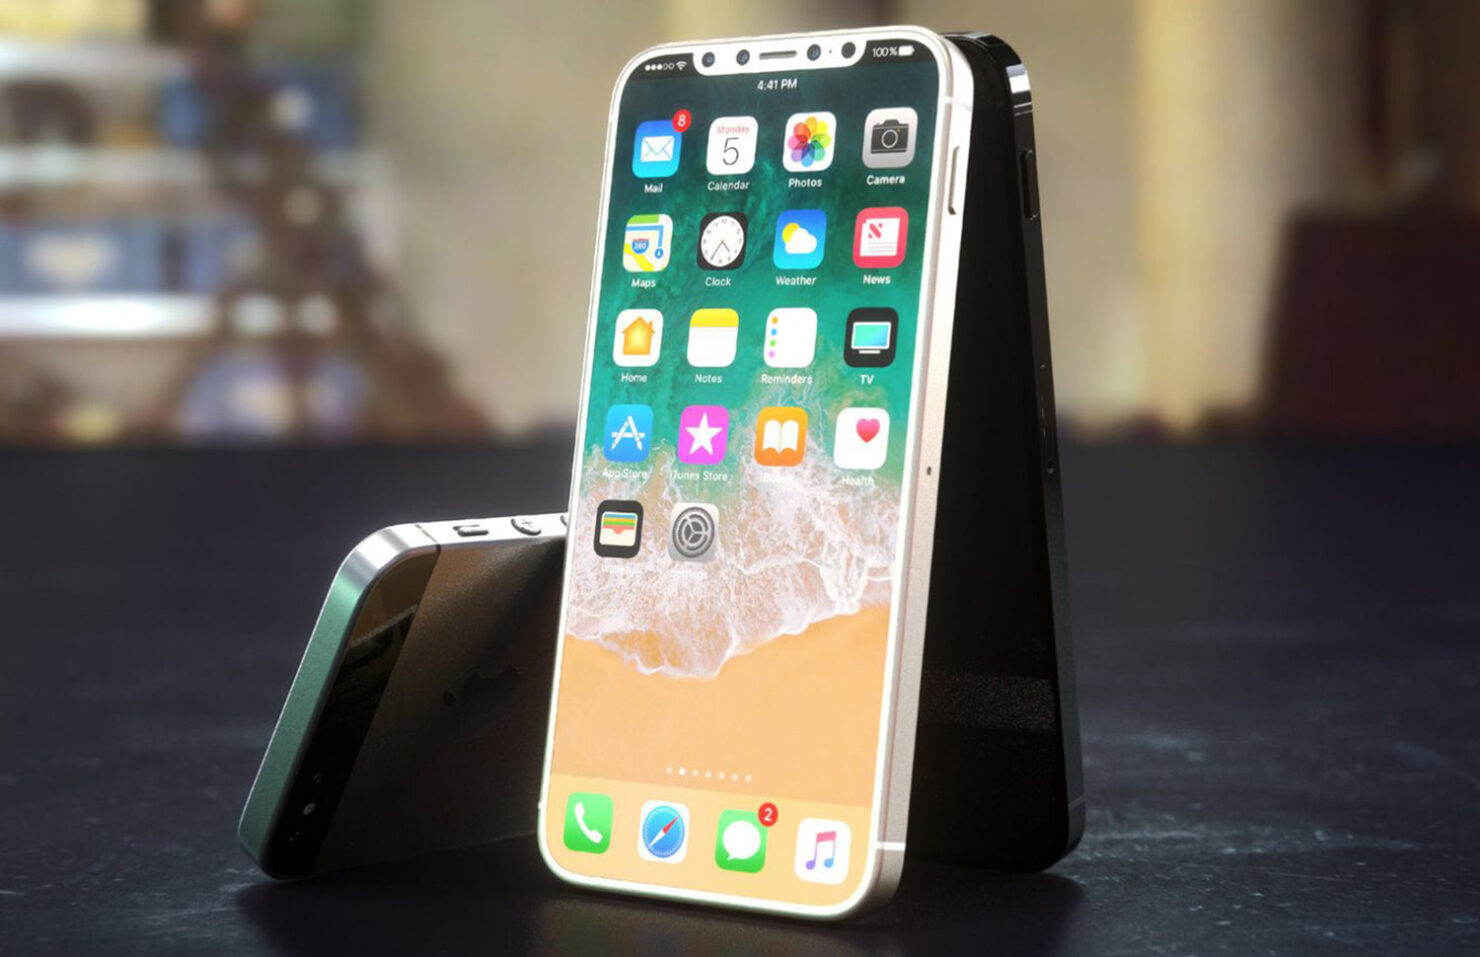 iPhone prototypes worth $300-$400 imported to India